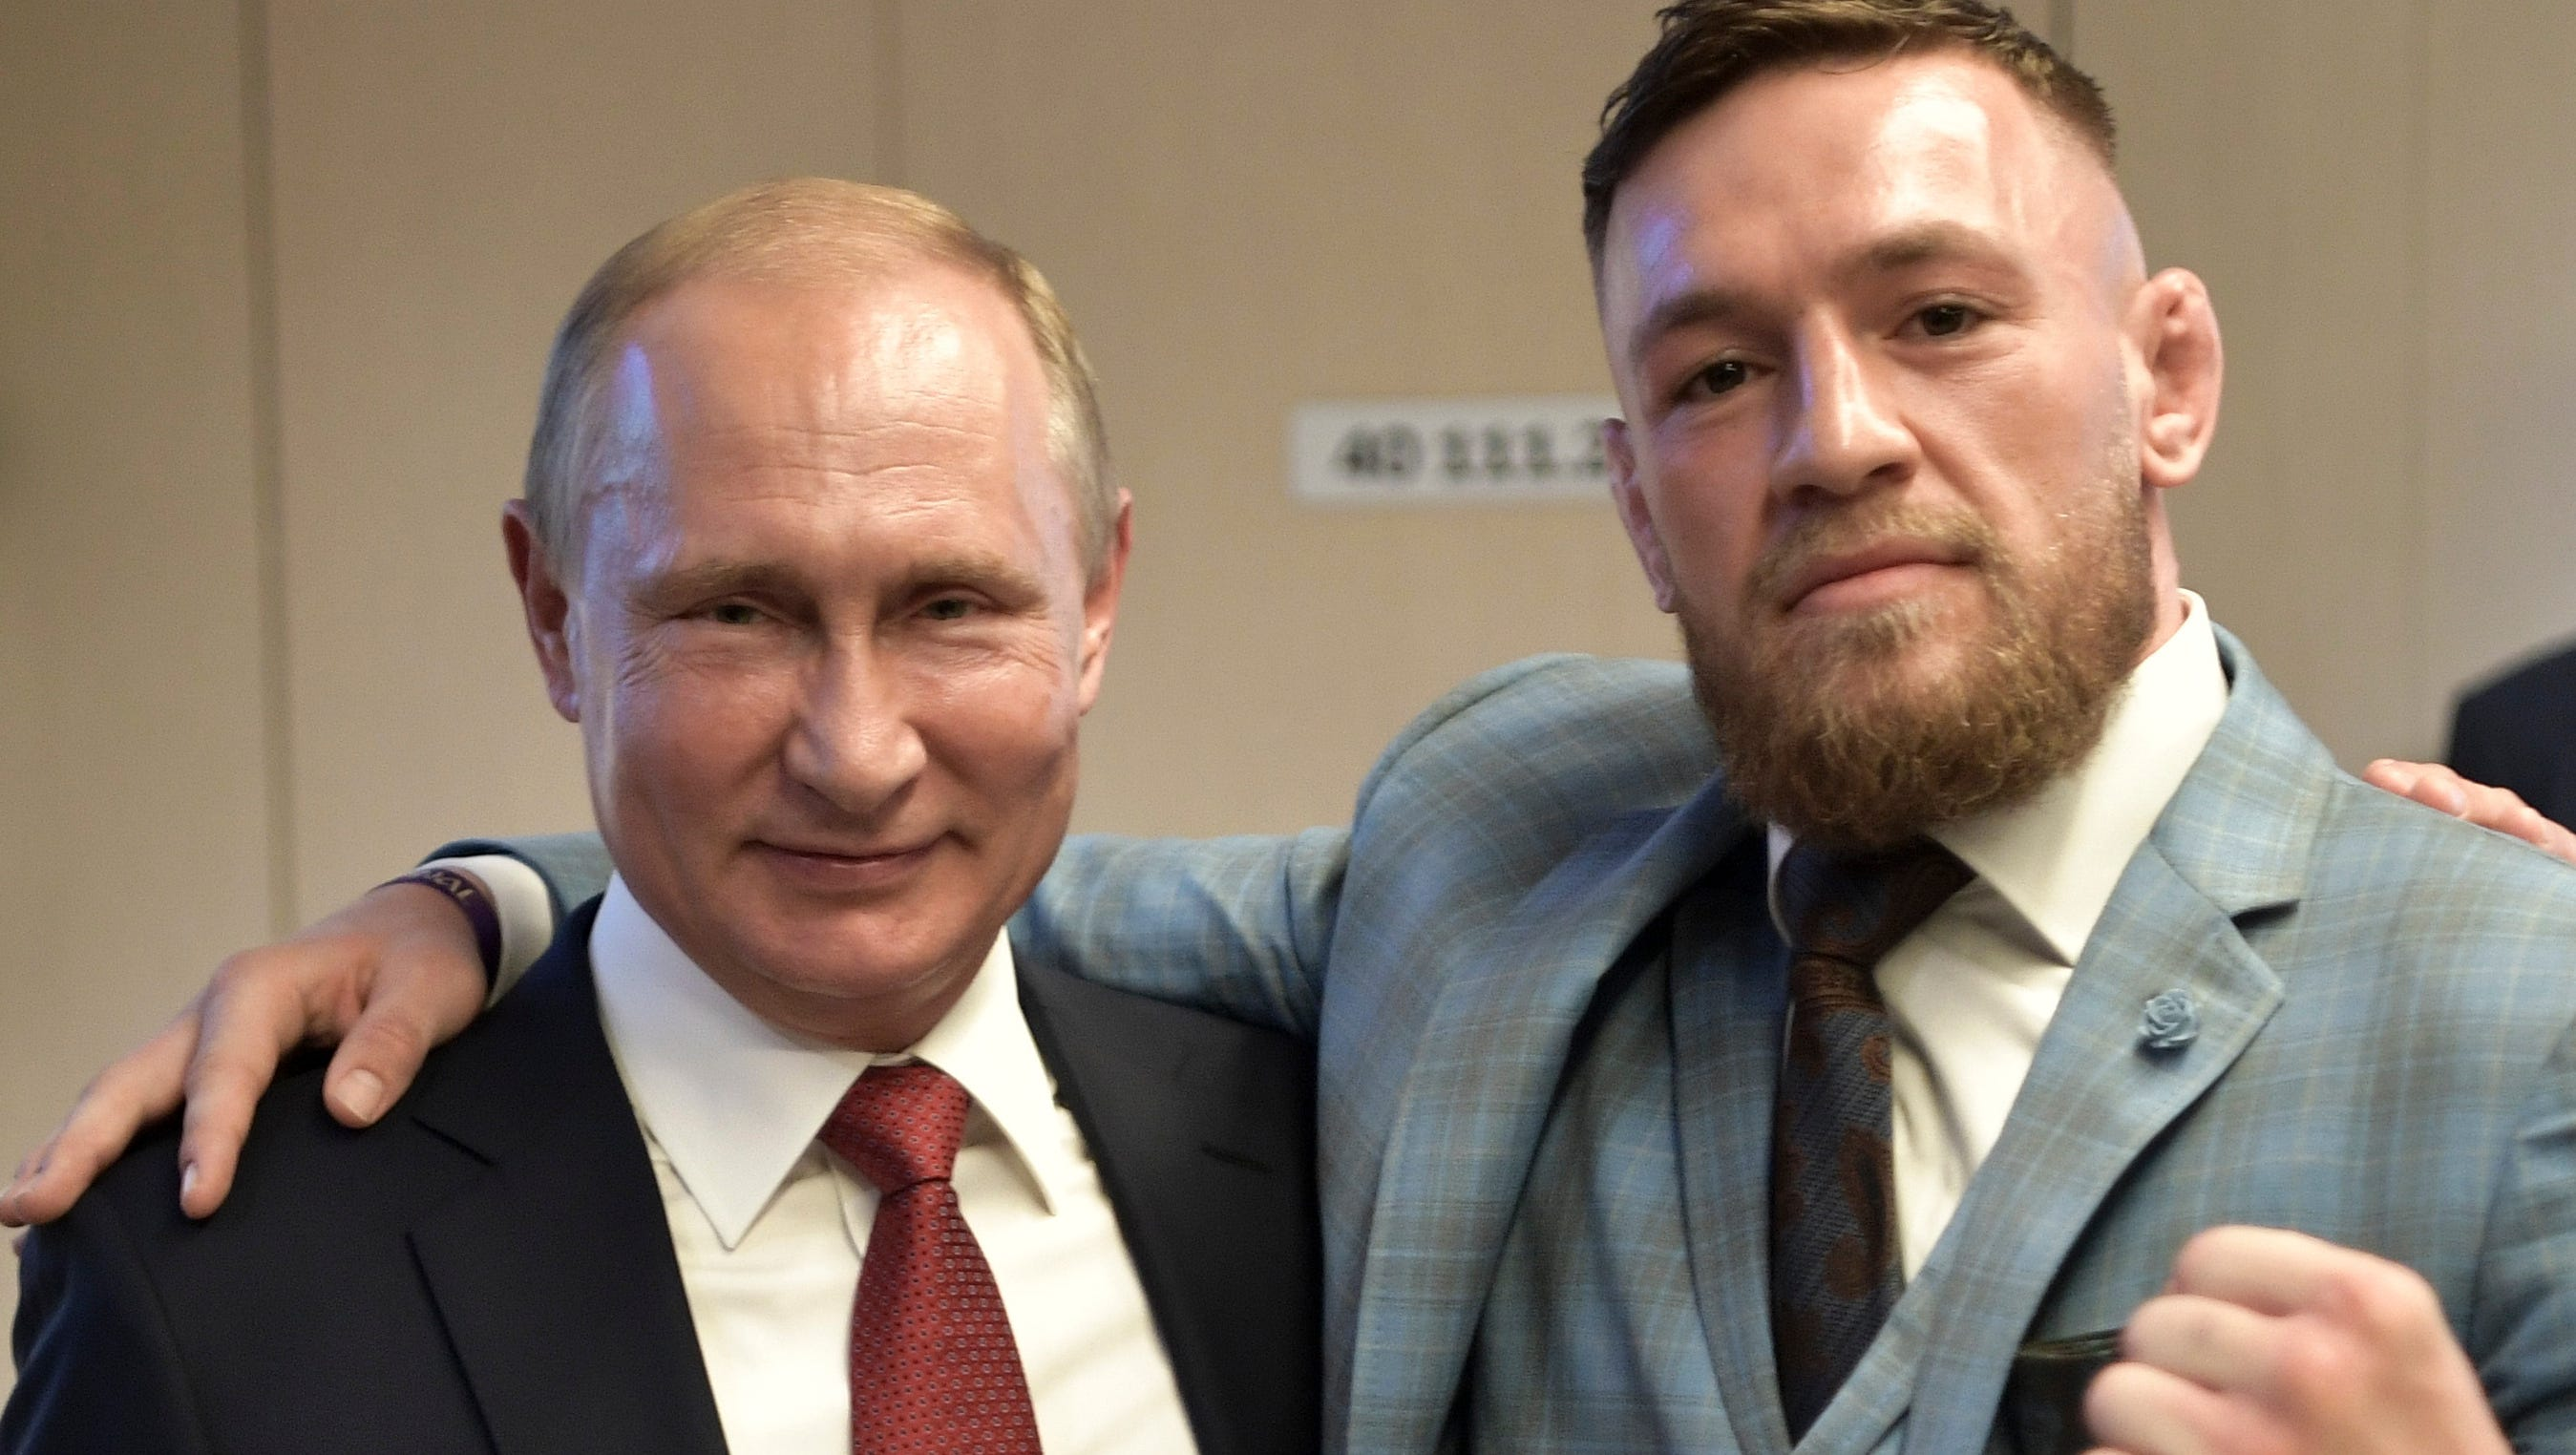 World Cup Conor Mcgregor Watches Final As Guest Of Vladimir Putin